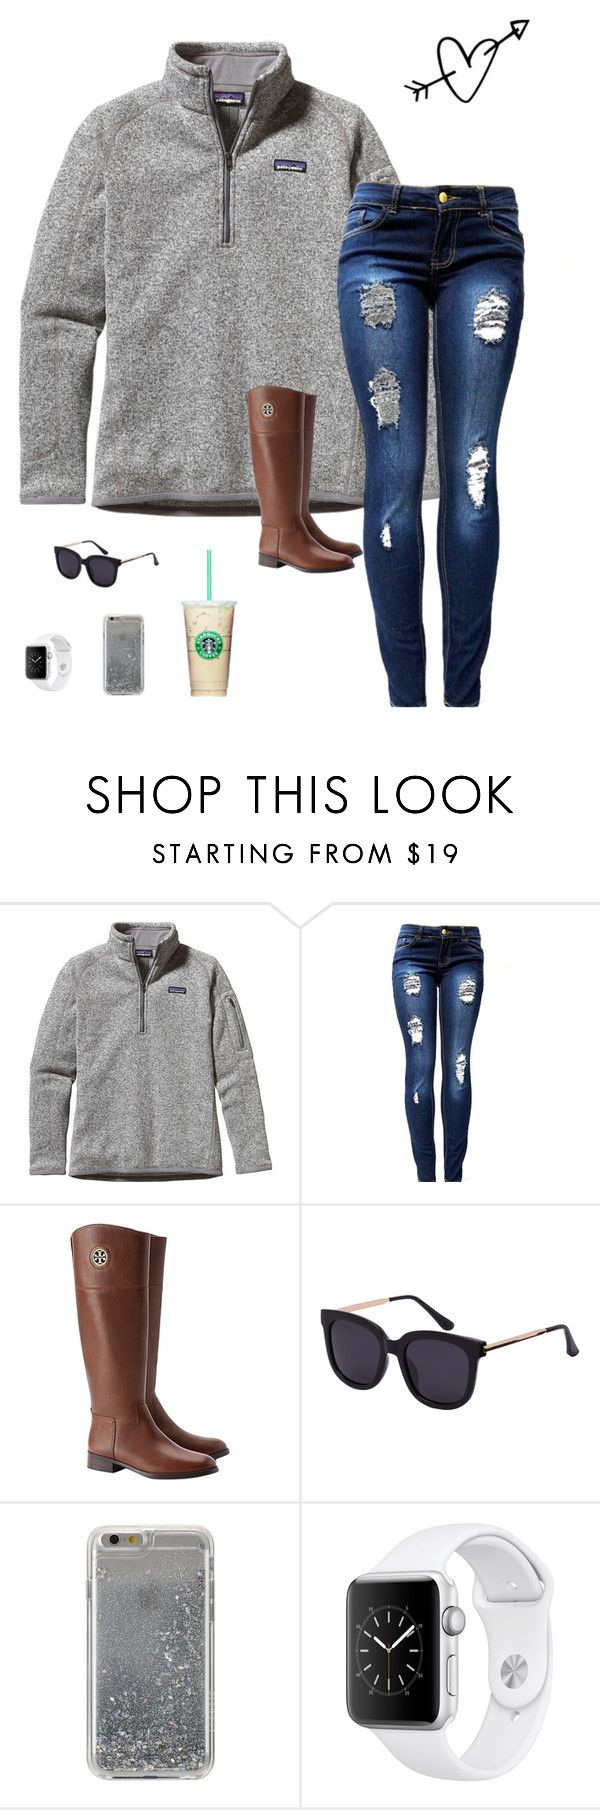 """Kinda like this"" by mariaaa2003 ❤ liked on Polyvore featuring Patagonia, Tory Burch and Agent 18"